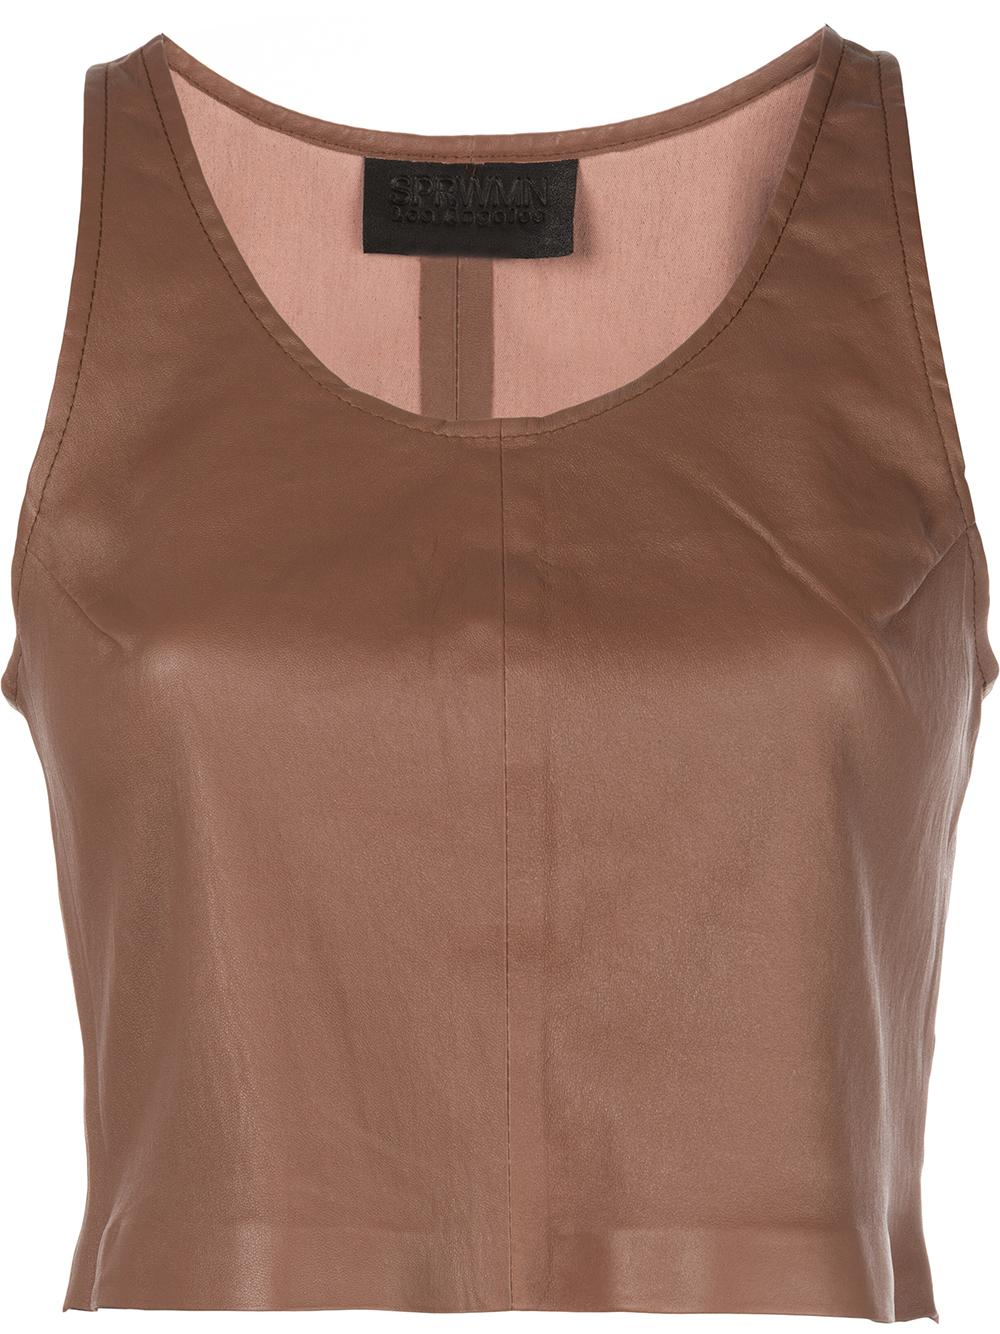 Leather Crop Tank